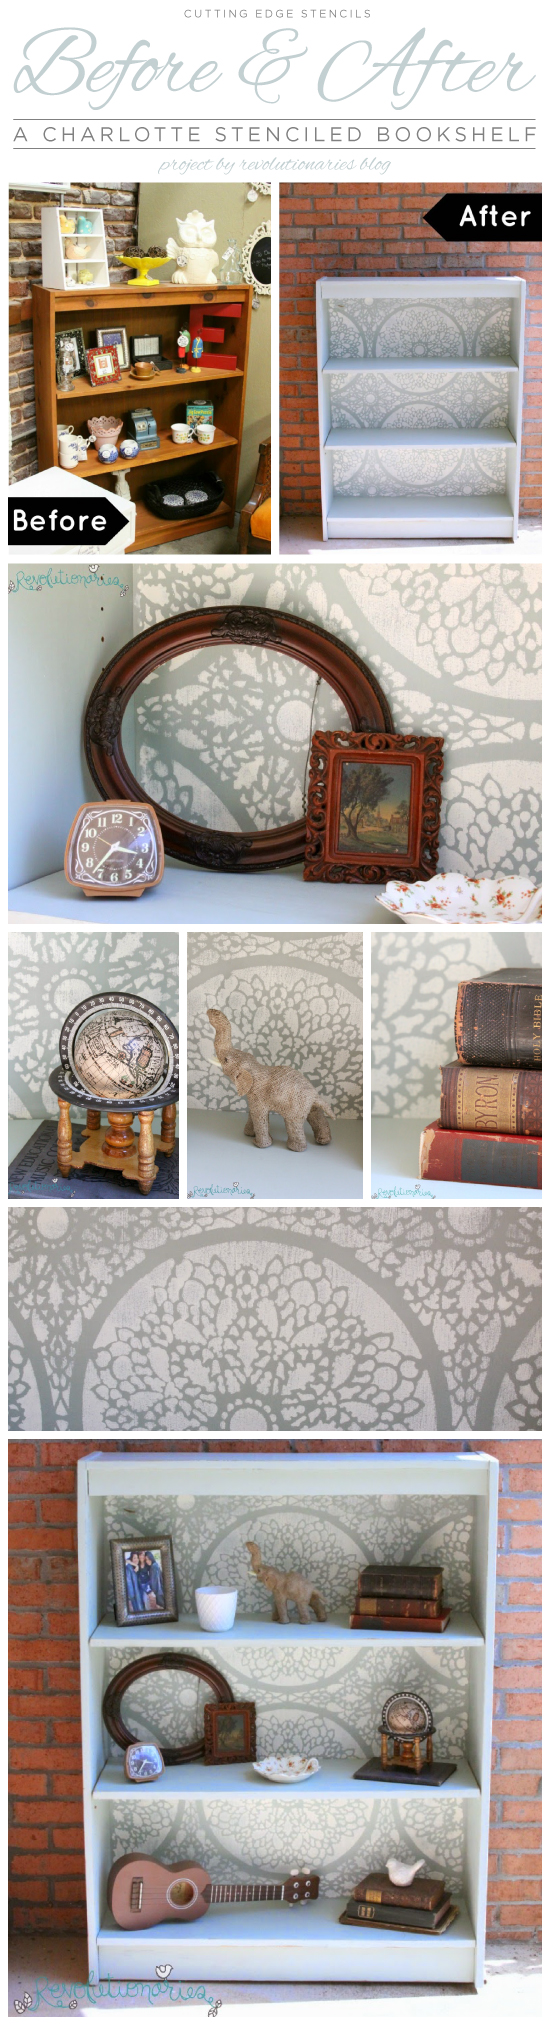 Cutting Edge Stencils shares a DIY stenciled bookshelf using the Charlotte Allover lace like stencil. http://www.cuttingedgestencils.com/charlotte-allover-stencil-pattern.html